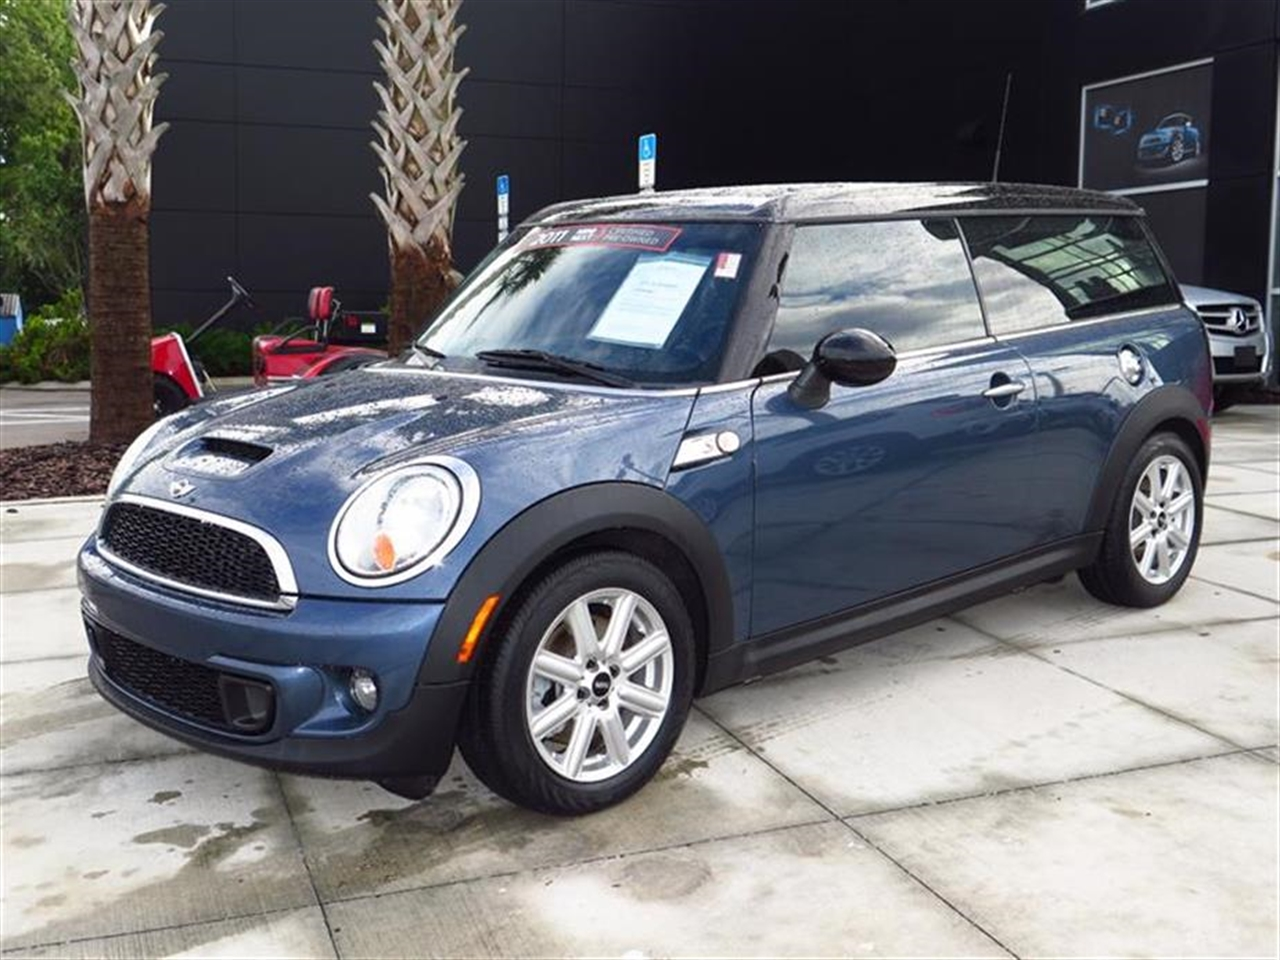 2011 MINI COOPER CLUBMAN 2dr Cpe S 29261 miles 1 rear cup holder 2 12V pwr outlets 2010 50